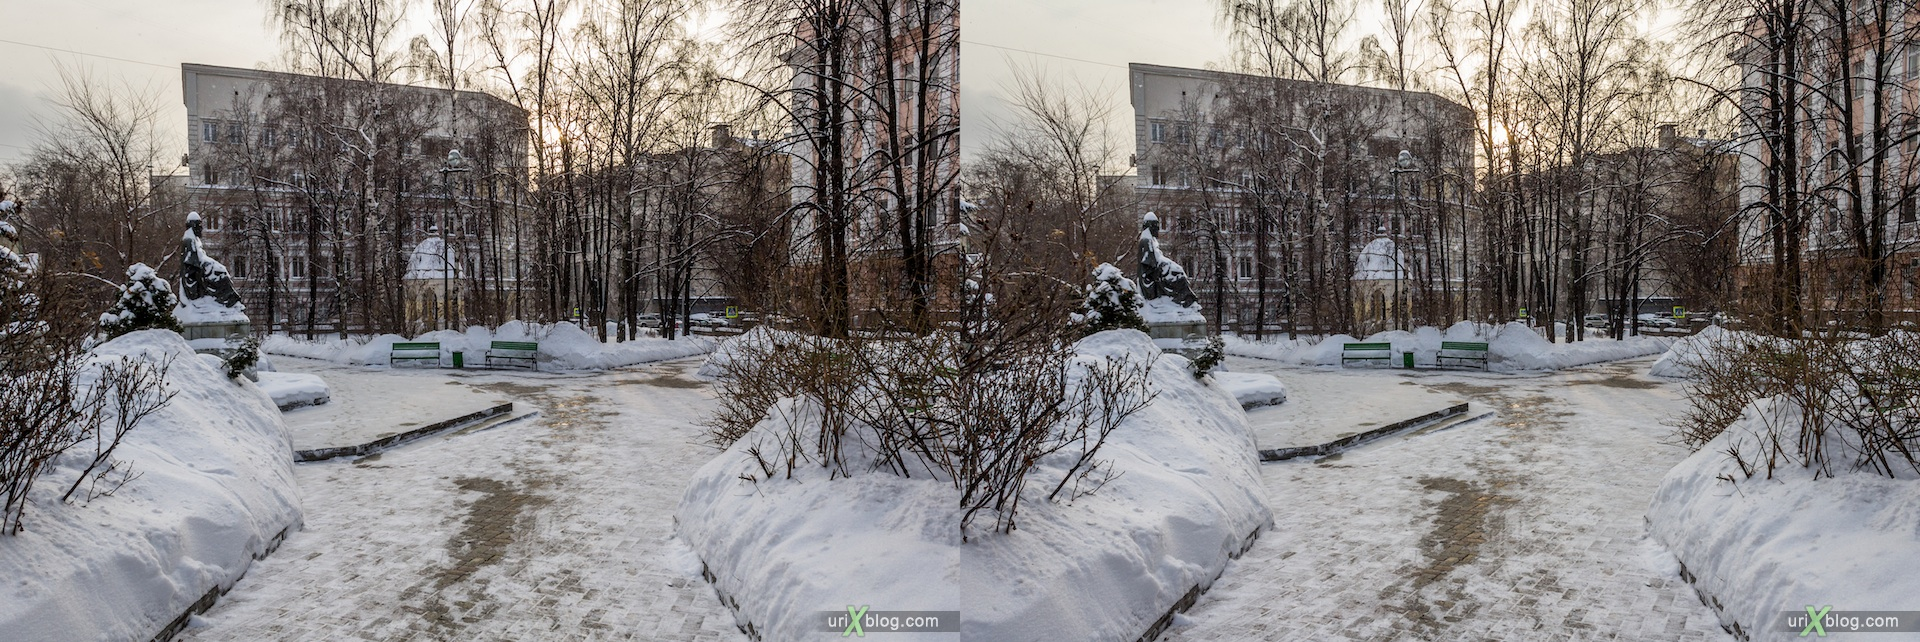 2013, Monument to Nezami Ganjavi, Moscow, snow, winter, city, Russia, 3D, stereo pair, cross-eyed, crossview, cross view stereo pair